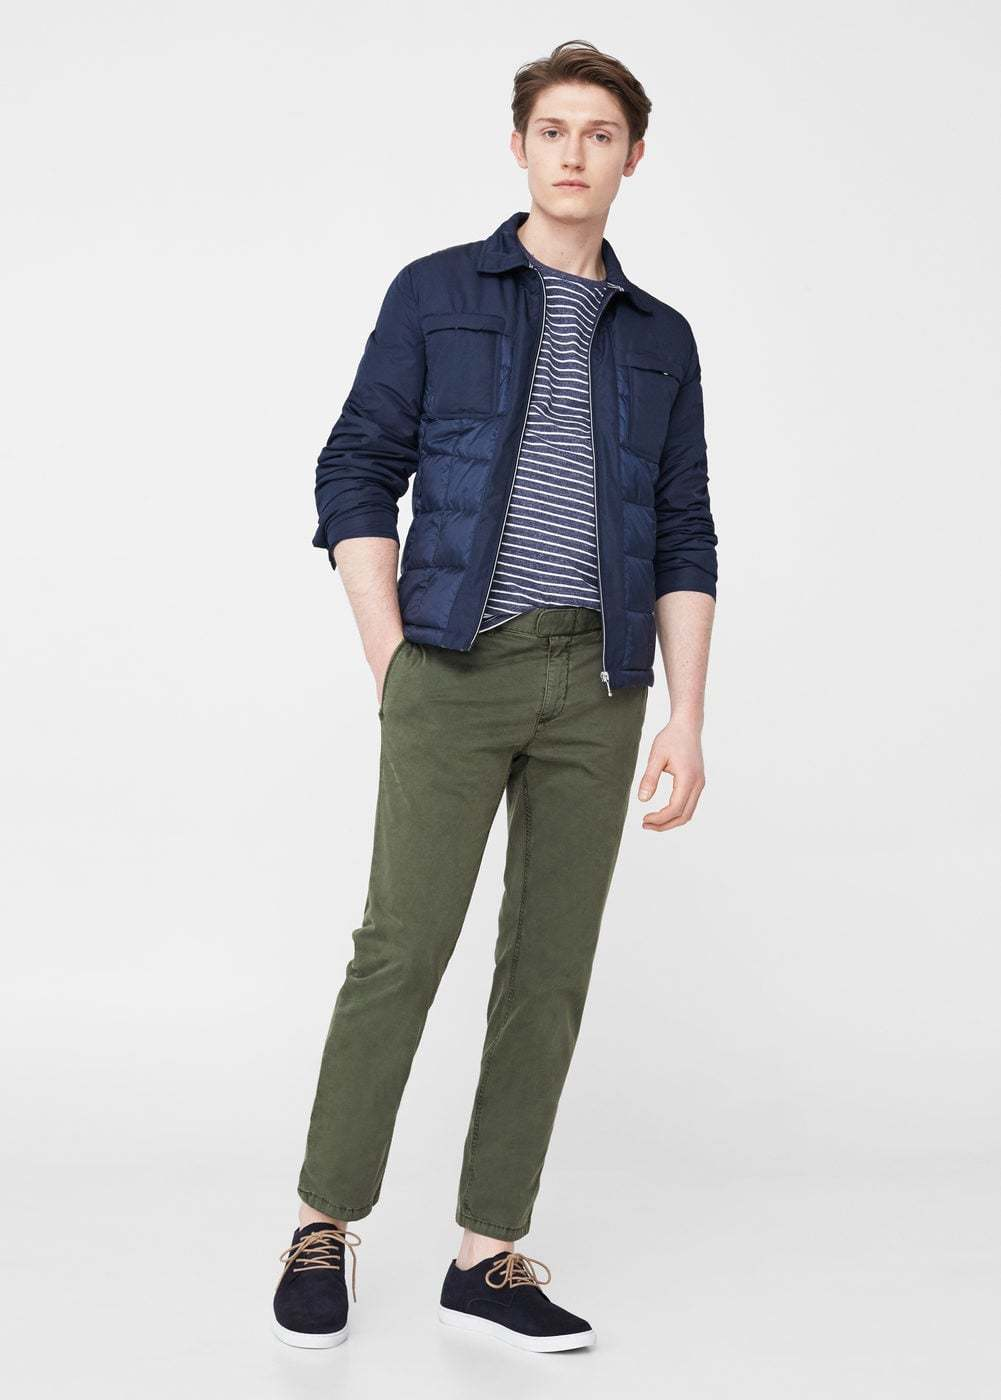 Black t shirt navy pants - This Pairing Of A Navy And White Crew Neck Tee And Olive Green Casual Pants